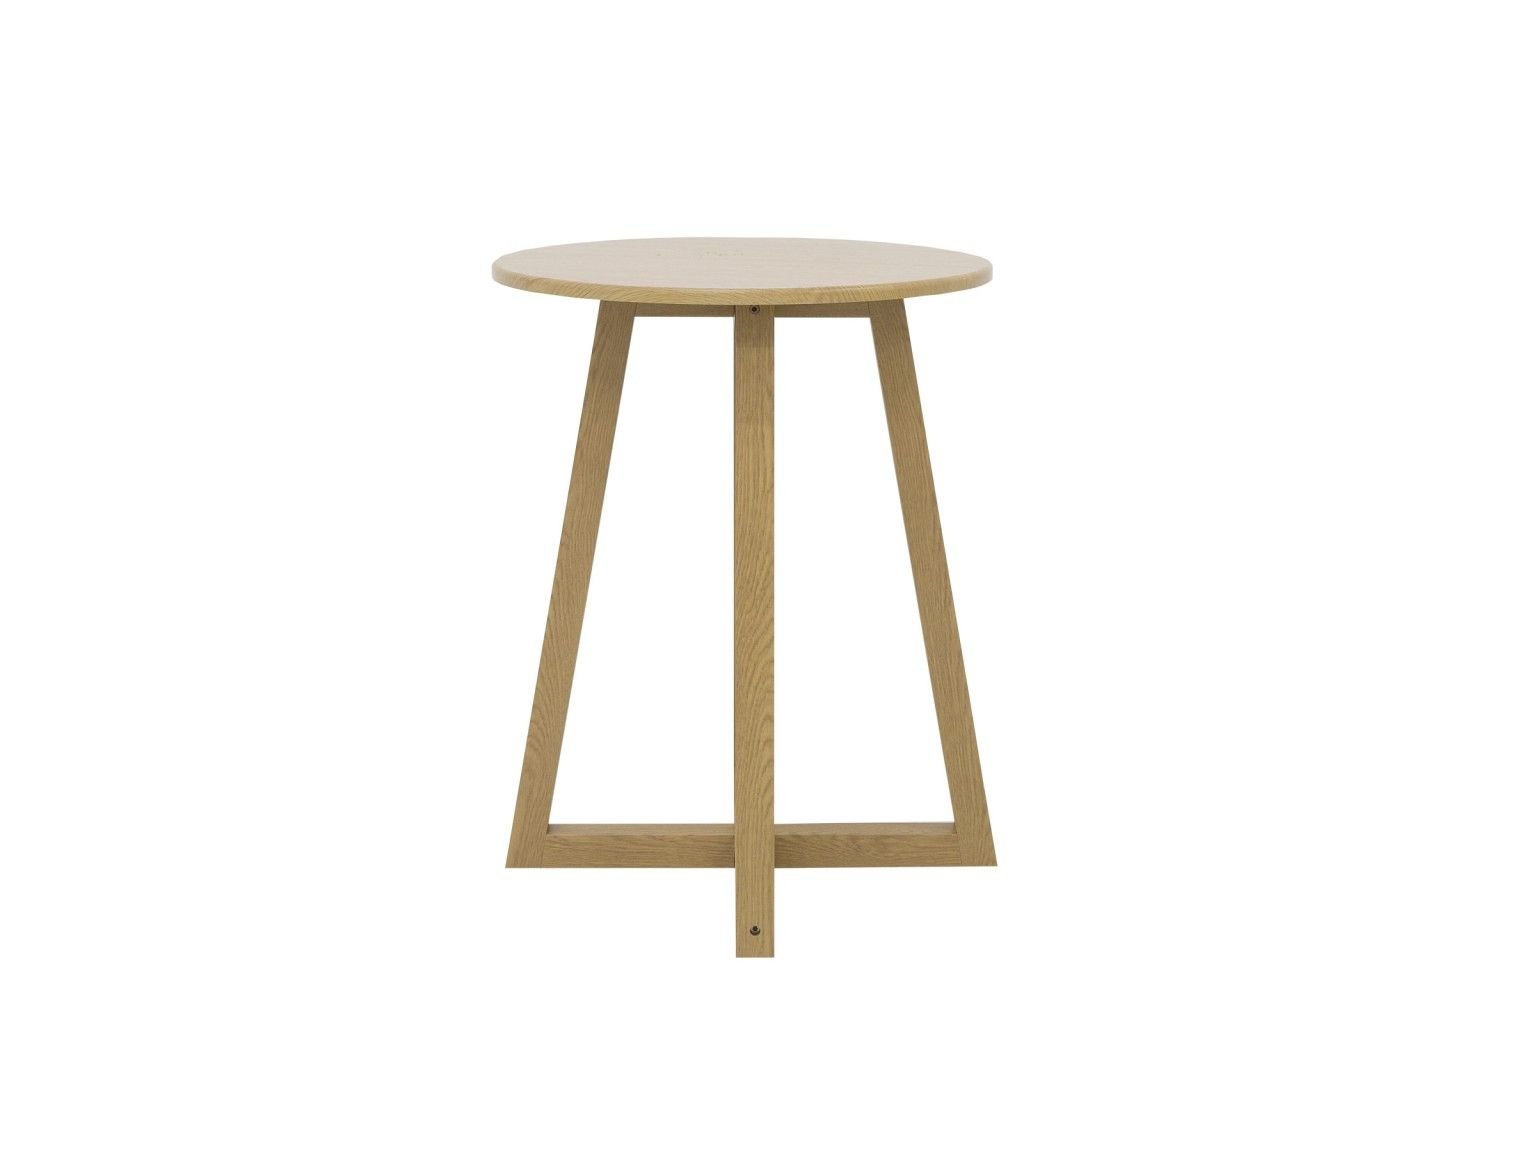 mocka avalon side table natural with swirl rug jute pouffe and round accent bailey cushion chairs ceiling lights ethan allen ballan wedge shaped driftwood house accessories small